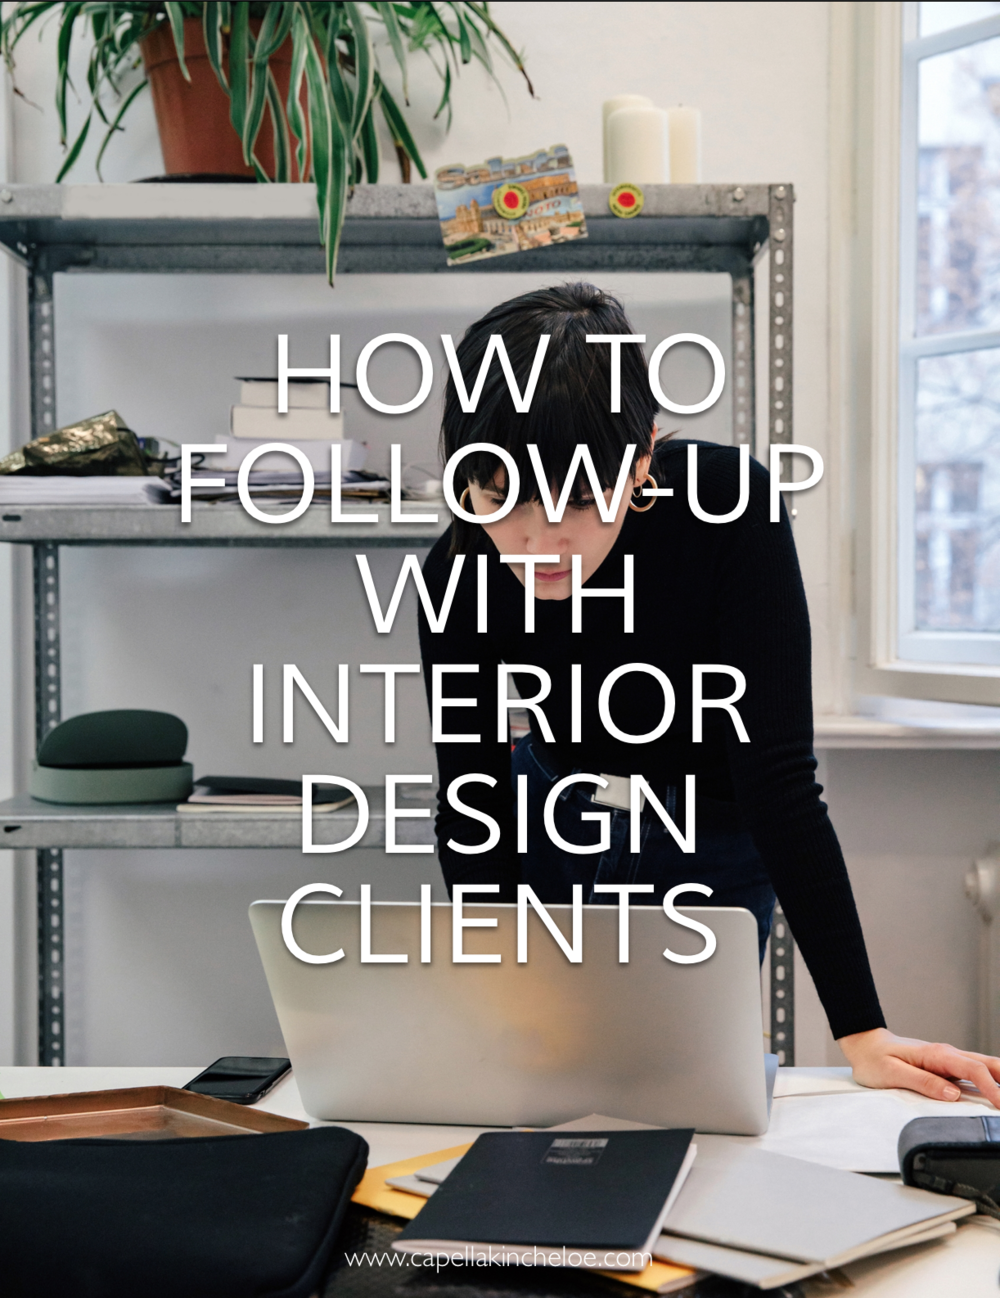 Not sure when or how you should follow up with your interior design clients? #interiordesignbusiness #cktradesecrets #capellakincheloe #interiordesignclients